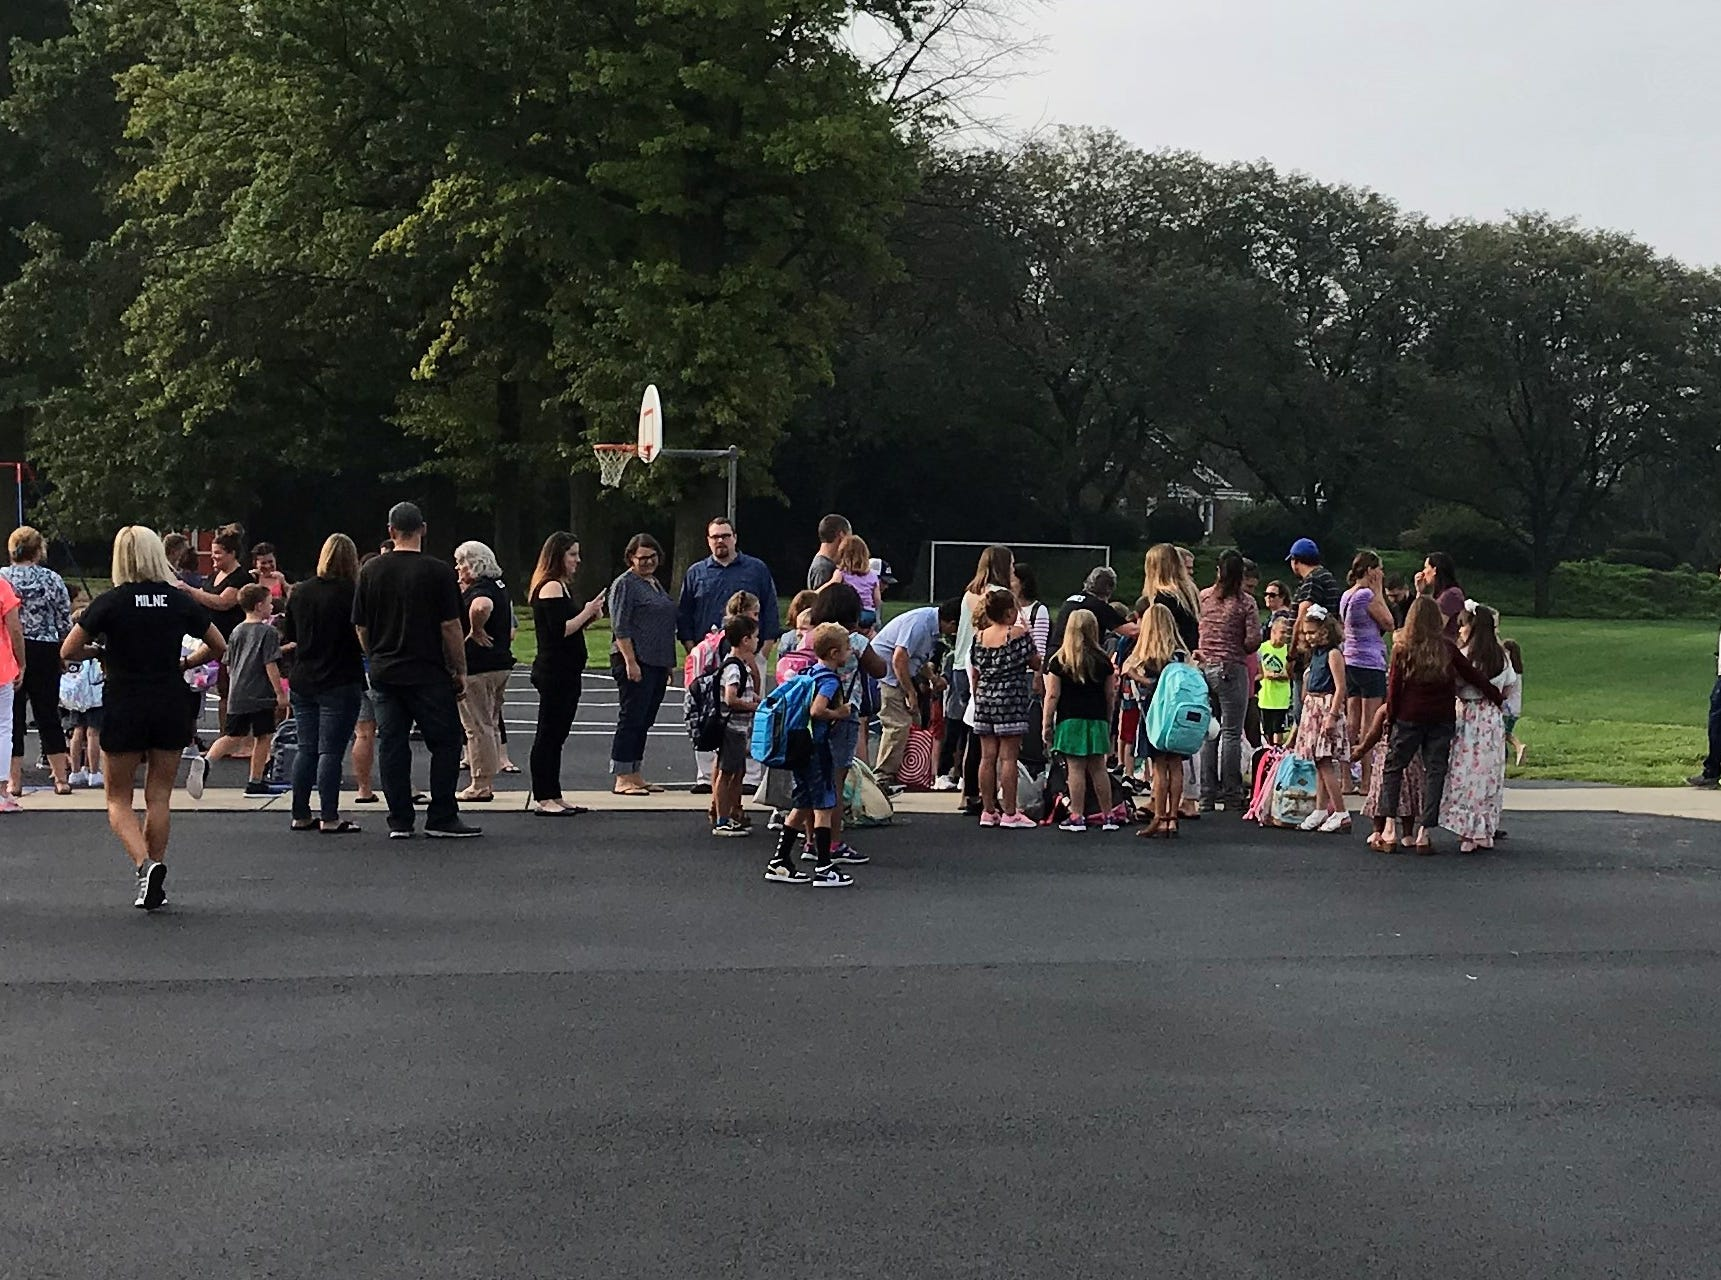 Students at Pine Street Elementary School gather on the playground in preparation for the first day of school.